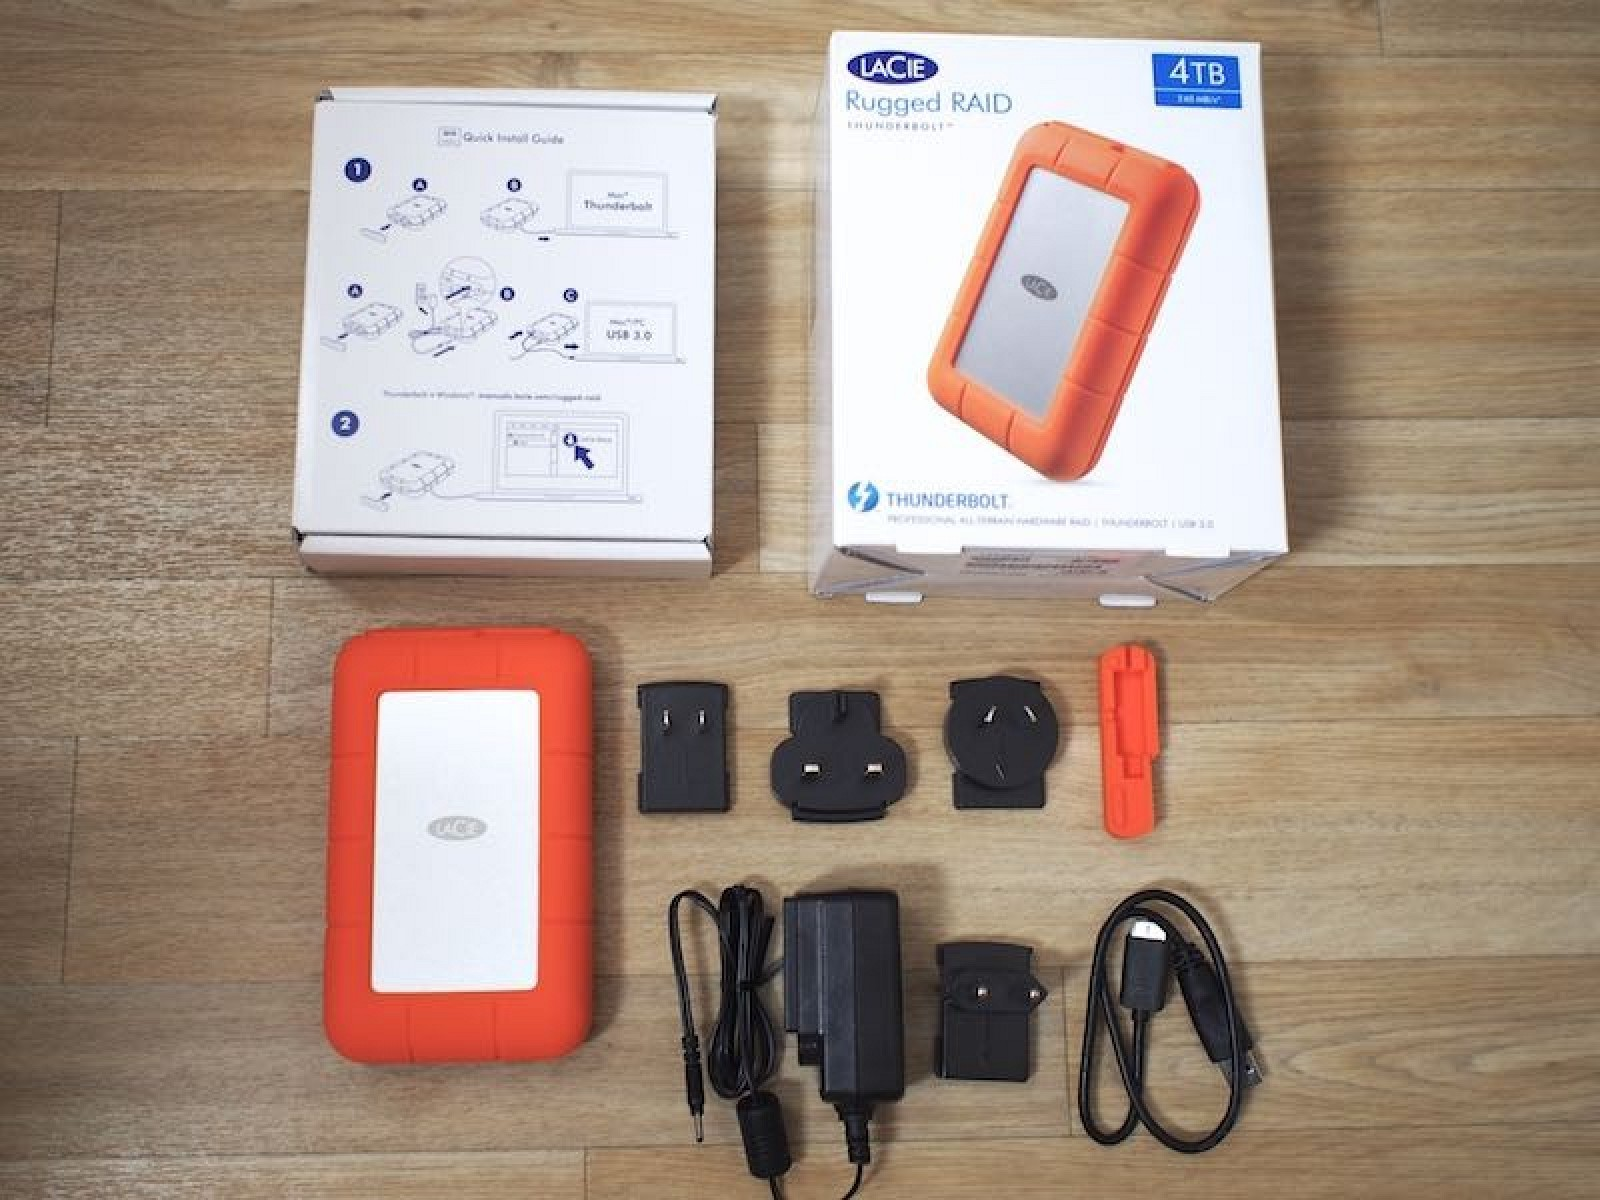 Lacie Review Hands On With The 4tb Rugged Raid